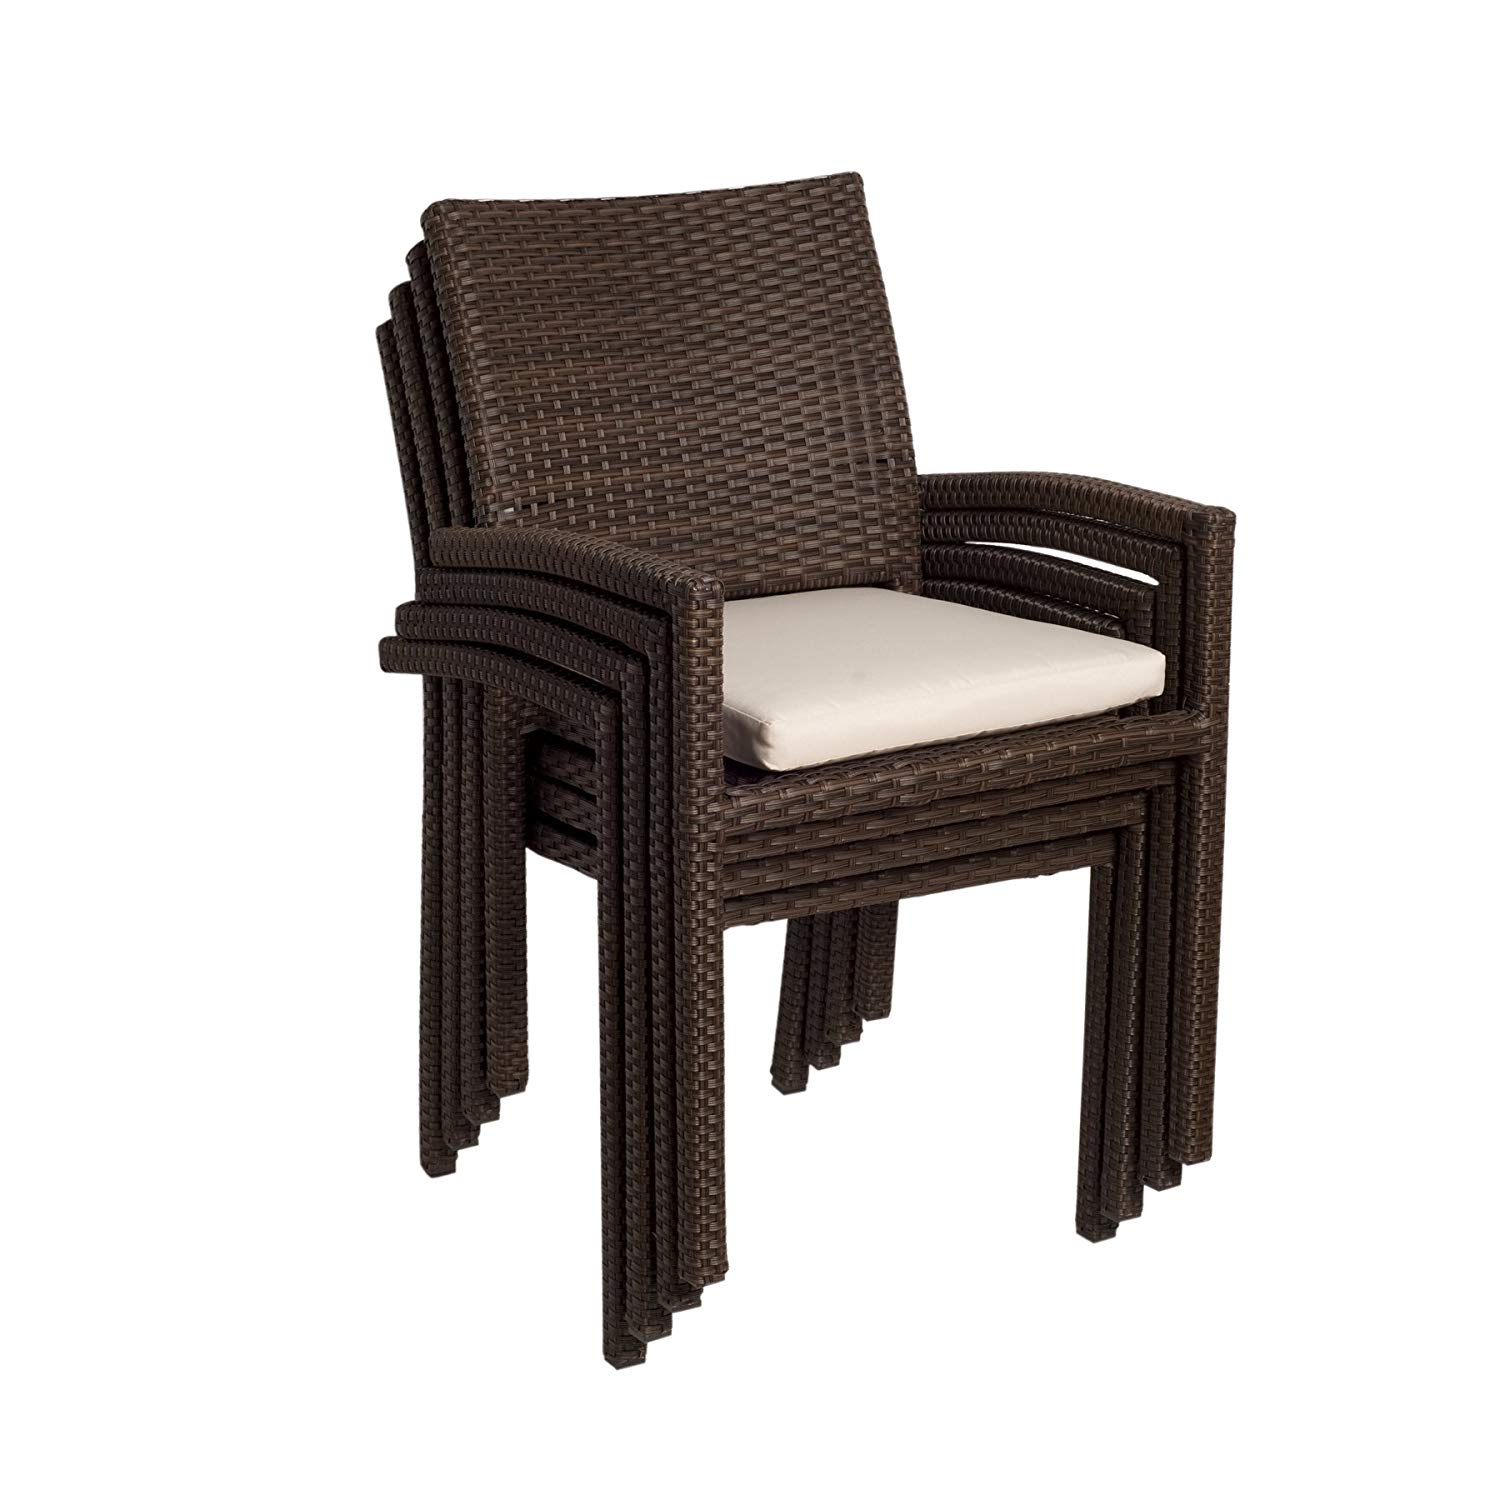 patio dining chairs amazon.com : atlantic liberty stackable armchairs, pack of 4 : patio dining WYBVEHV